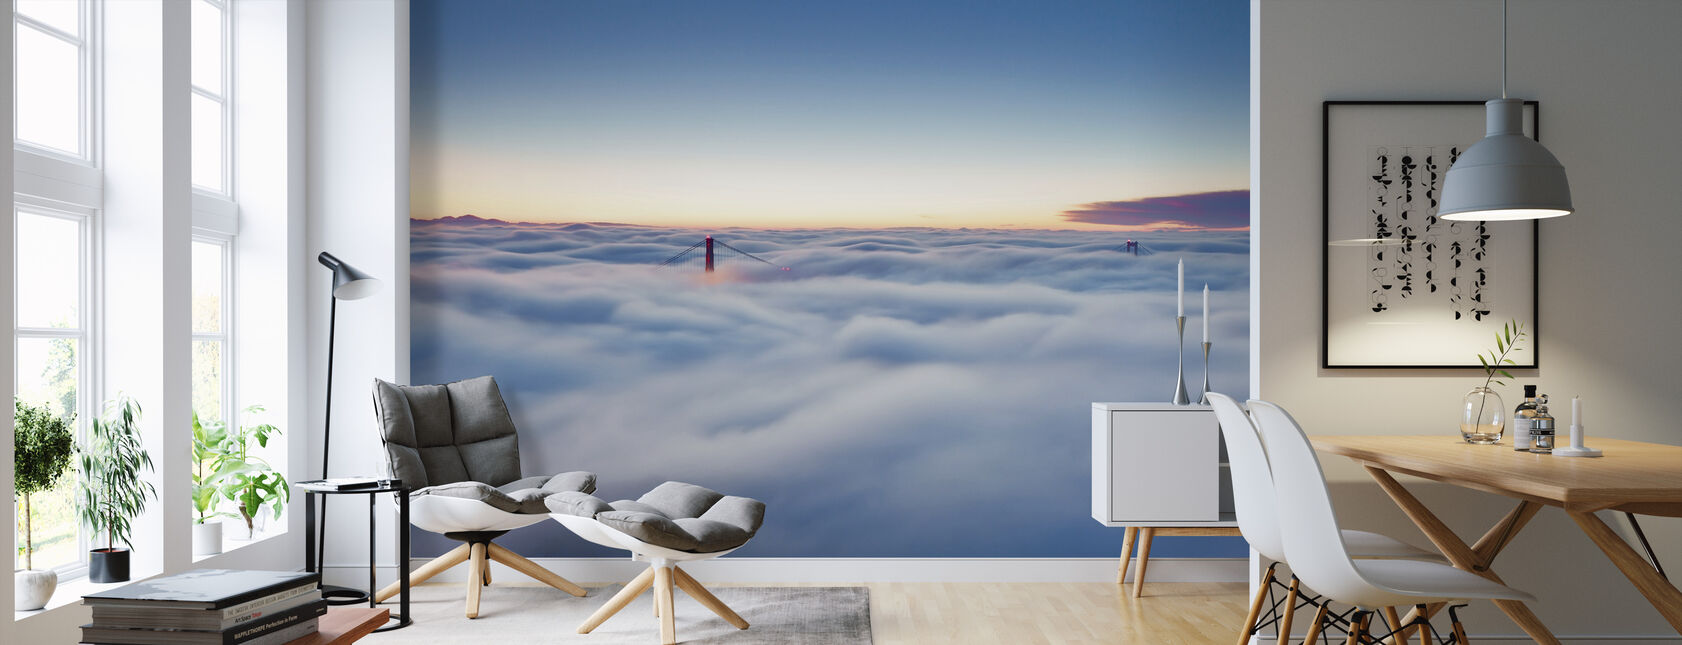 Fog over San Francisco - Wallpaper - Living Room